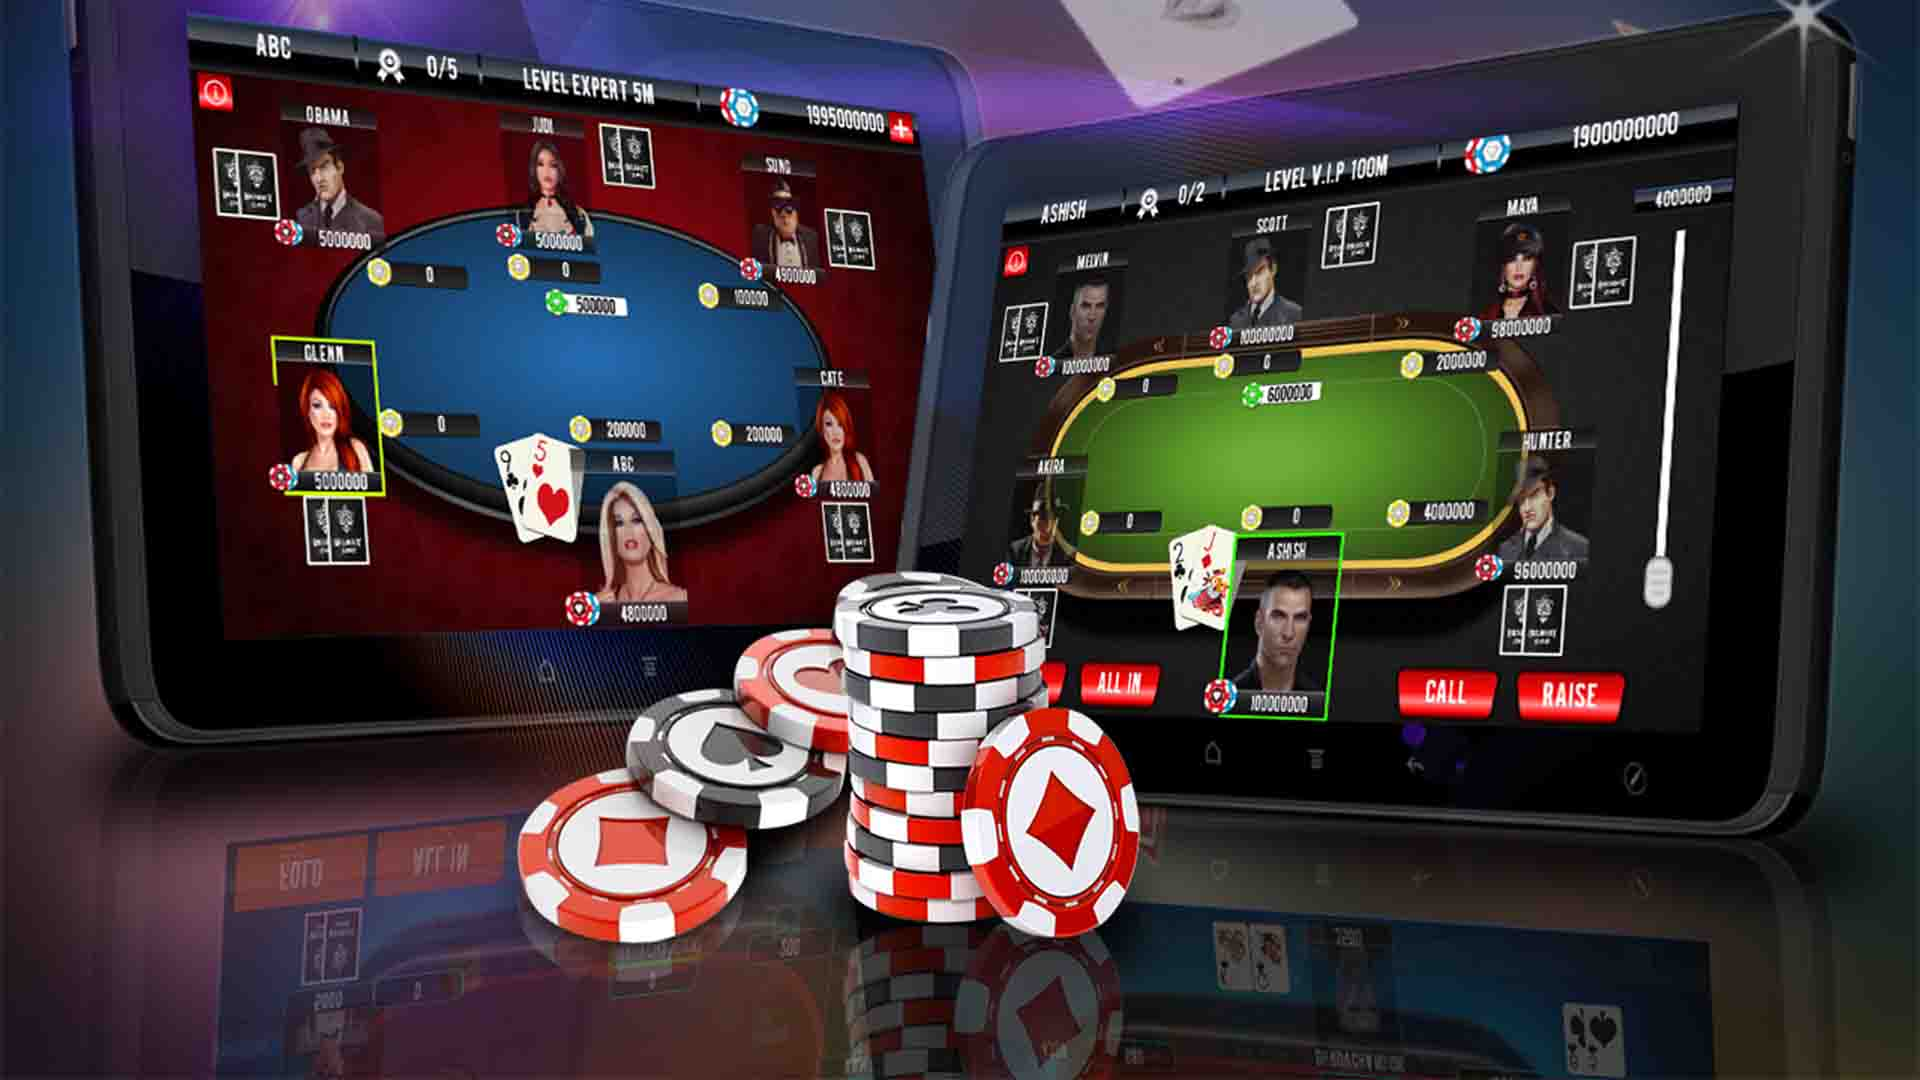 Online Casino Pay Attention To those 10 Signals